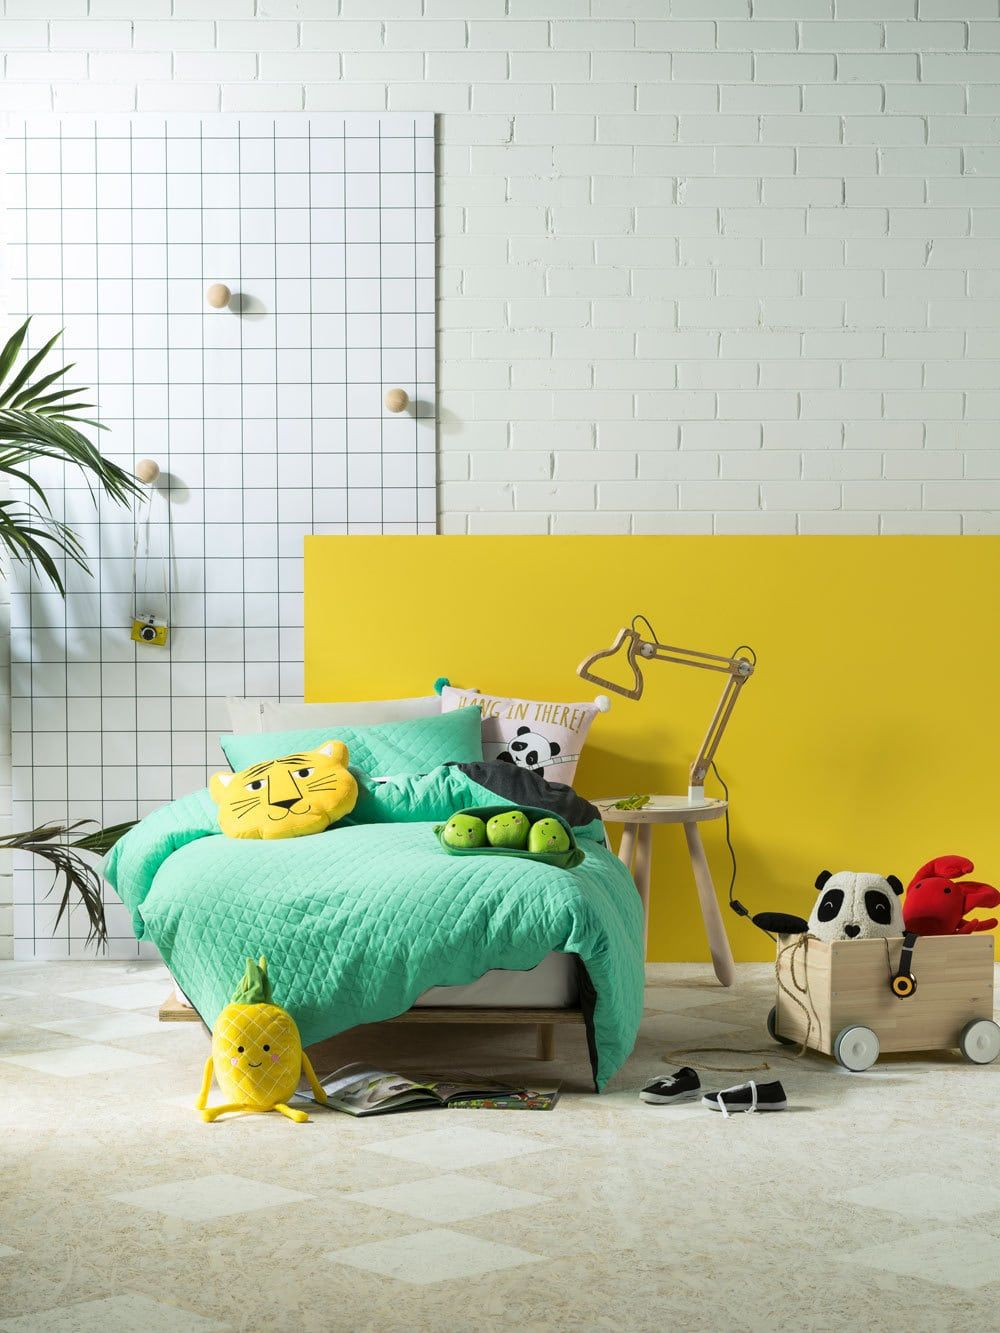 10 Adorable Theme Ideas for your Little One\'s Bedroom | Linens ...